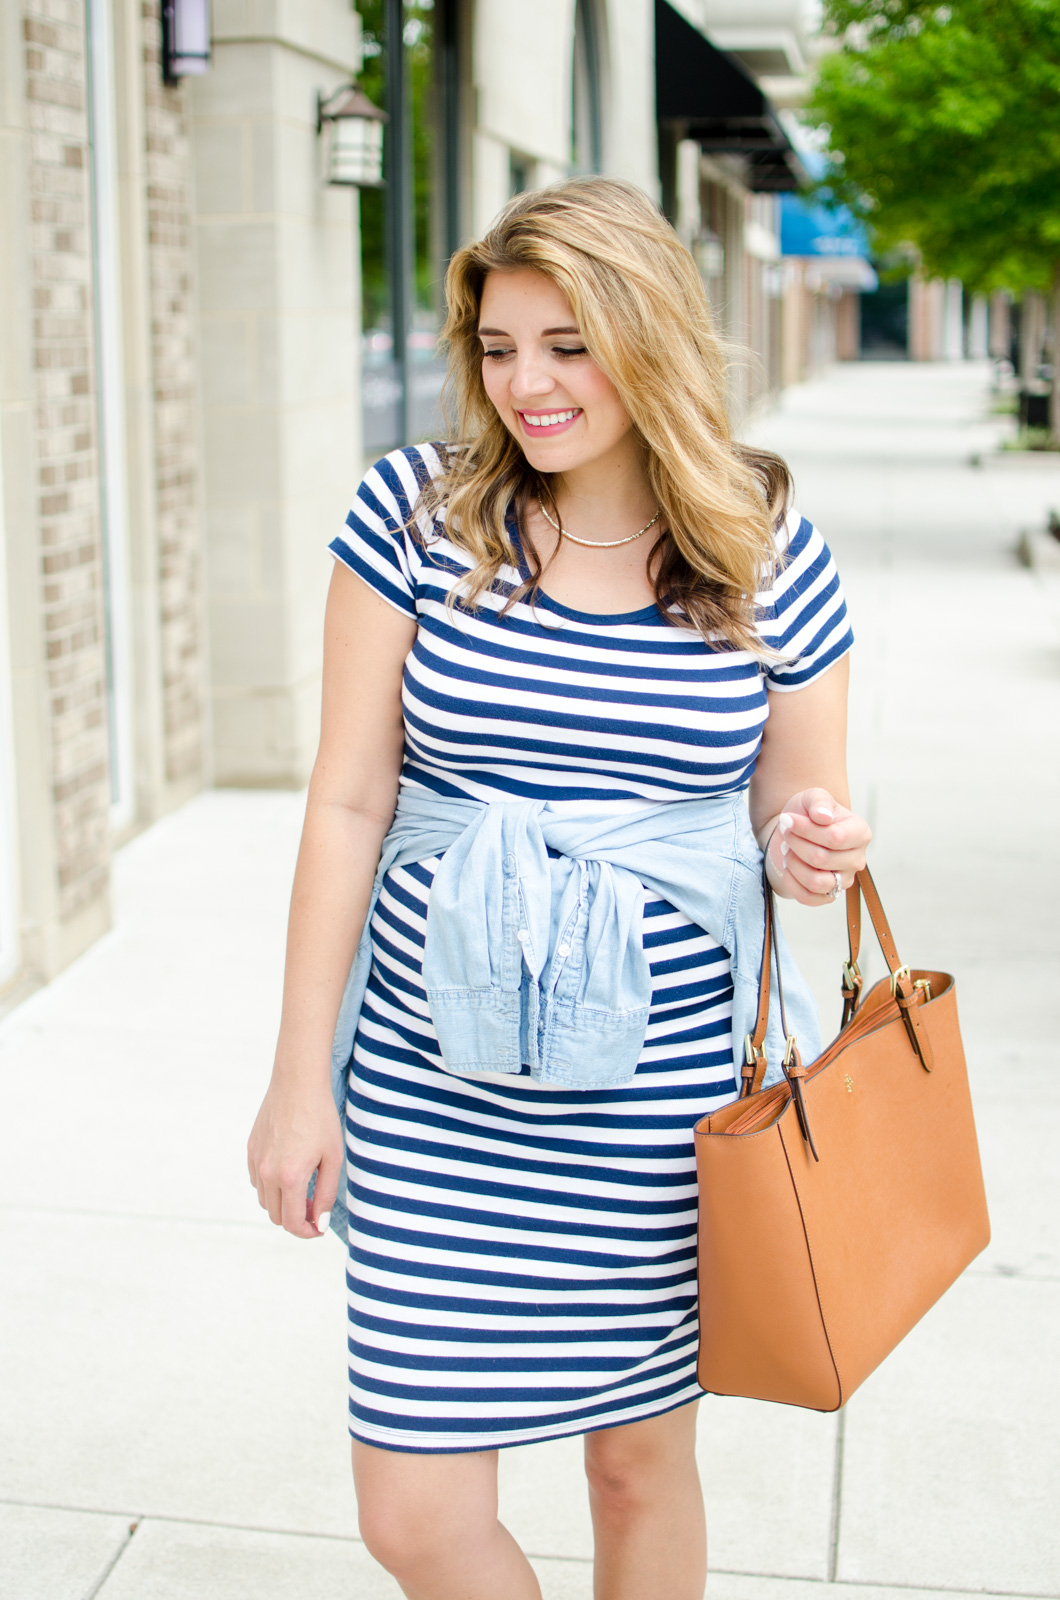 4th of july maternity outfit - what to wear 4th of july pregnant | For more cute summer pregnancy outfits, head to bylaurenm.com